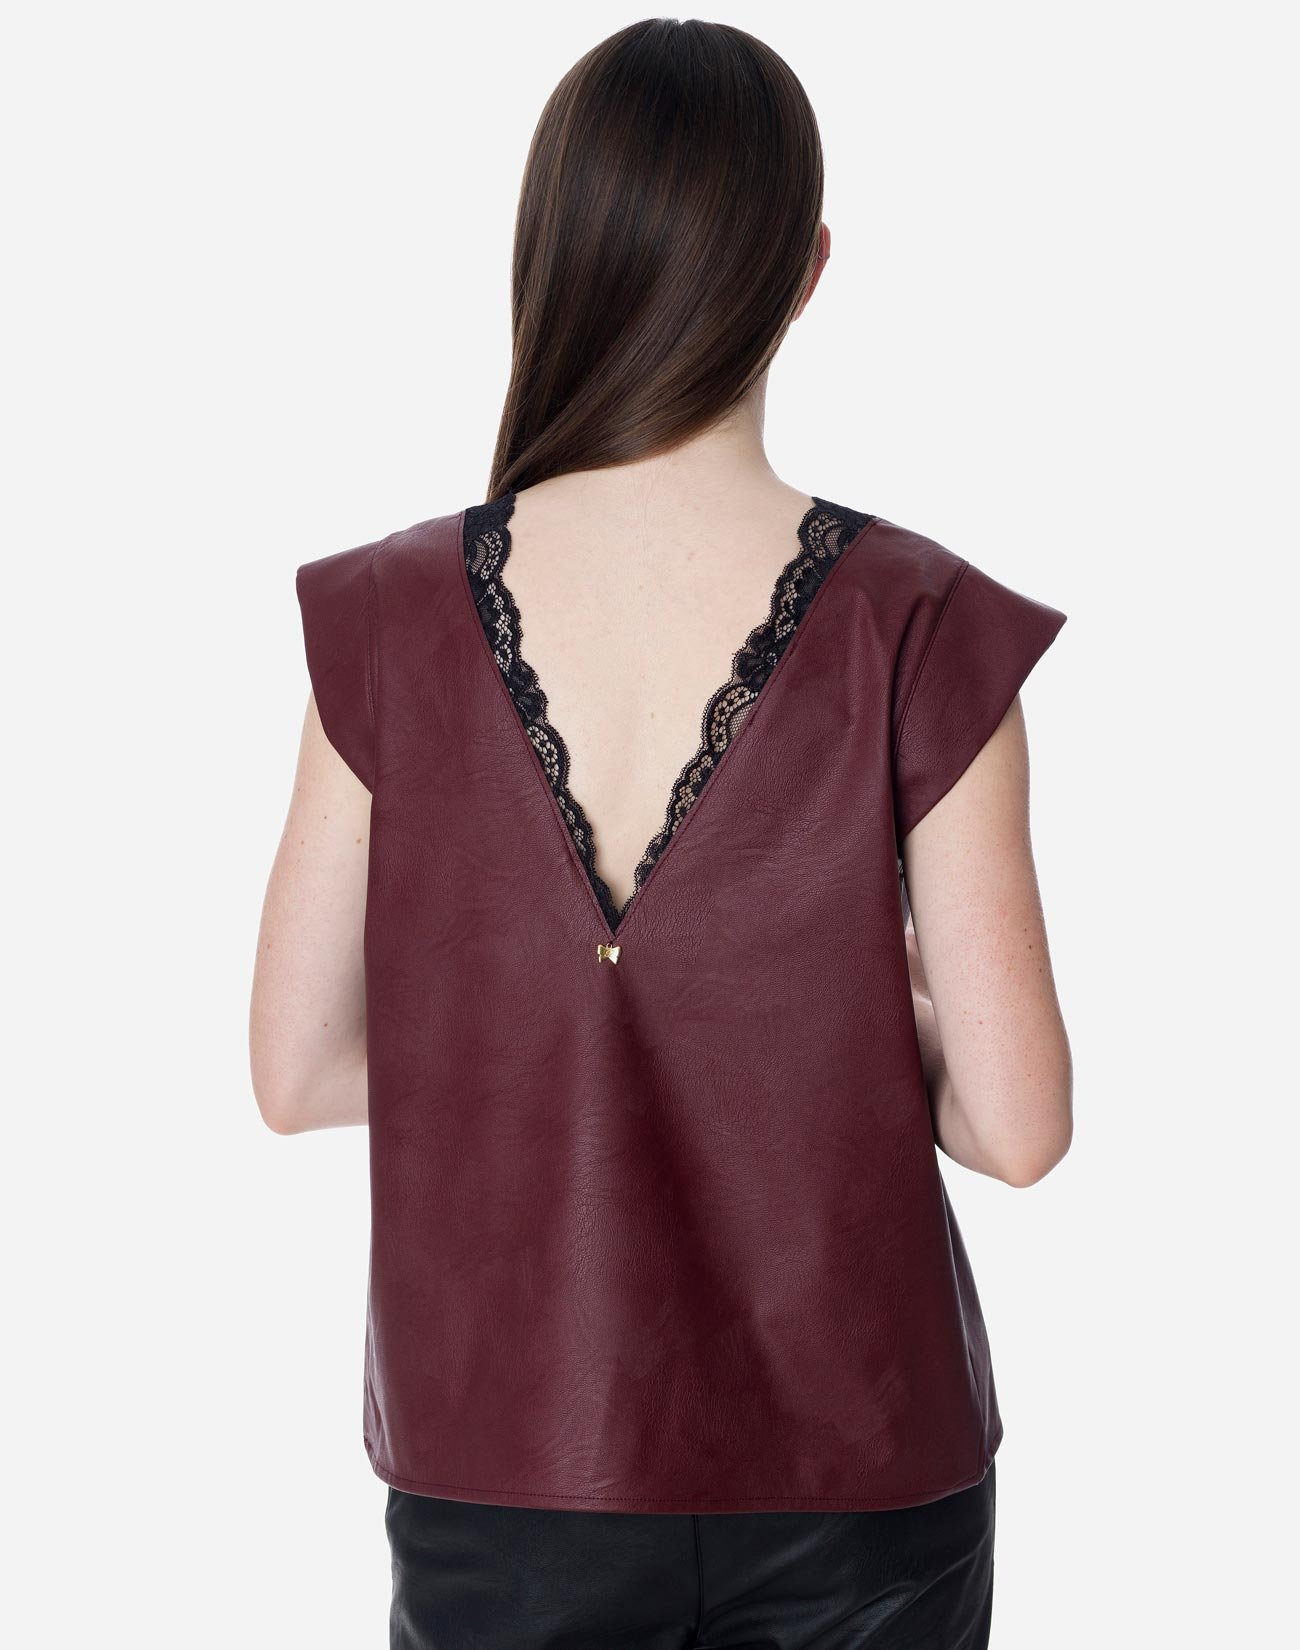 Faux leather top with lace